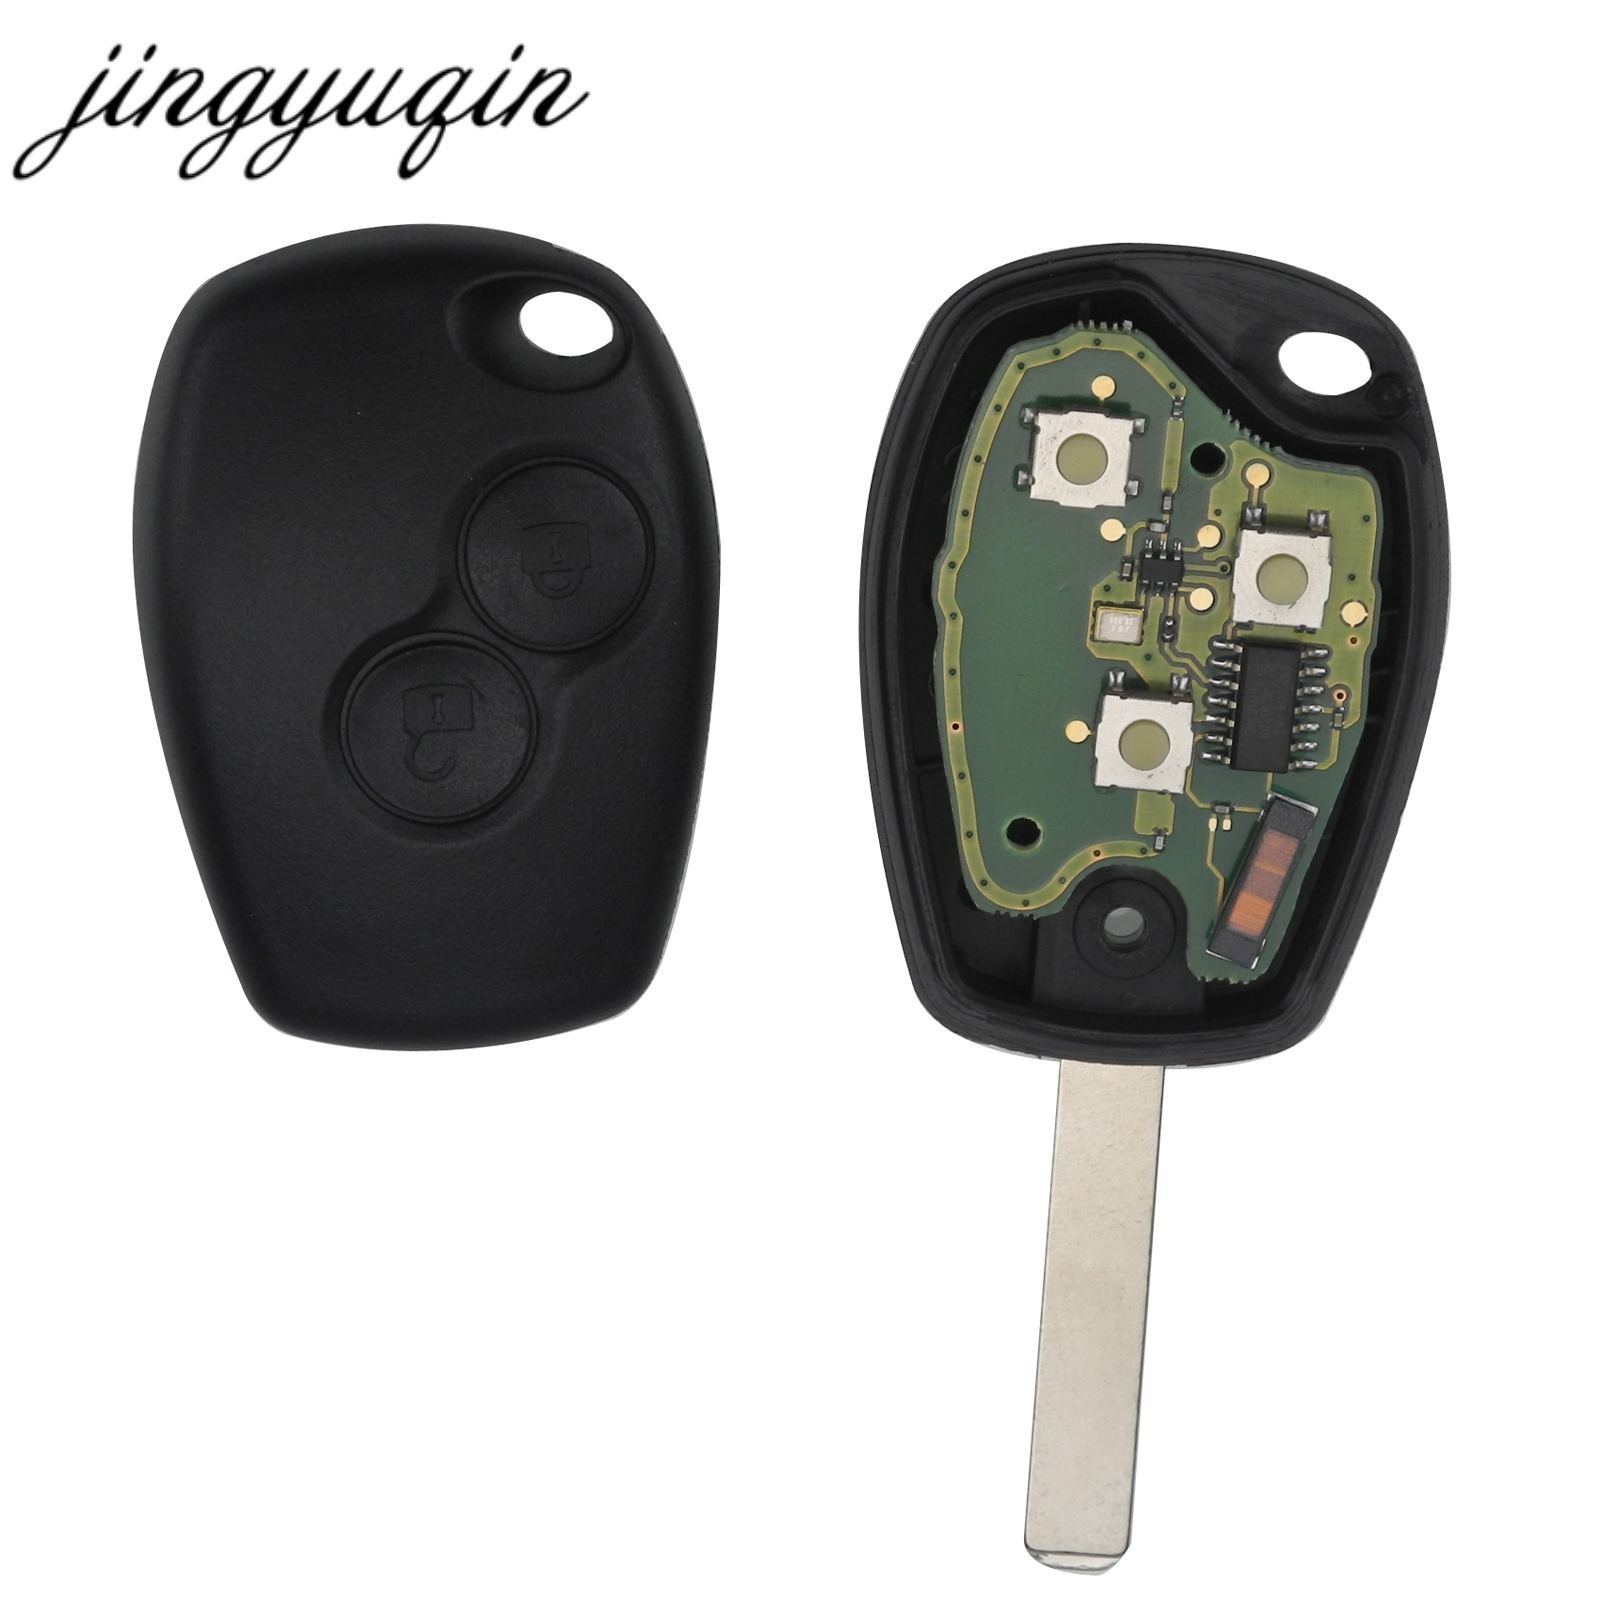 jingyuqin 2 Buttons Remote Control Key Cover Case For Renault Duster Modus Clio 3 Twingo DACIA Logan Sandero 433MHz PCF7947 Chipjingyuqin 2 Buttons Remote Control Key Cover Case For Renault Duster Modus Clio 3 Twingo DACIA Logan Sandero 433MHz PCF7947 Chip